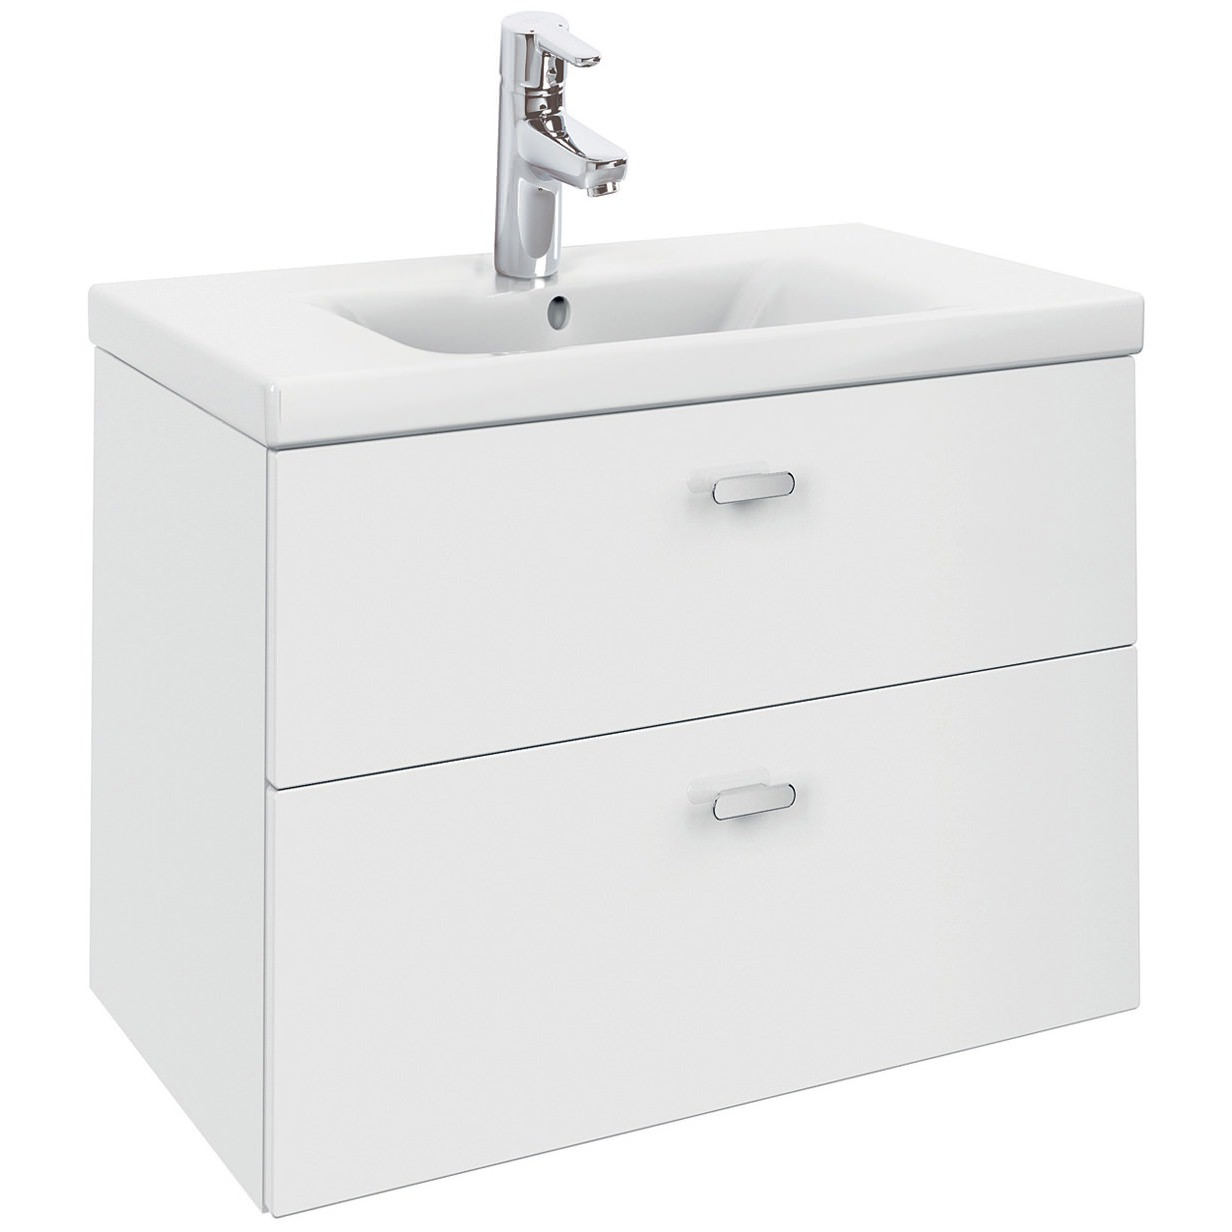 Ideal Standard Concept 700mm Vanity Unit With Drawers E6506wg